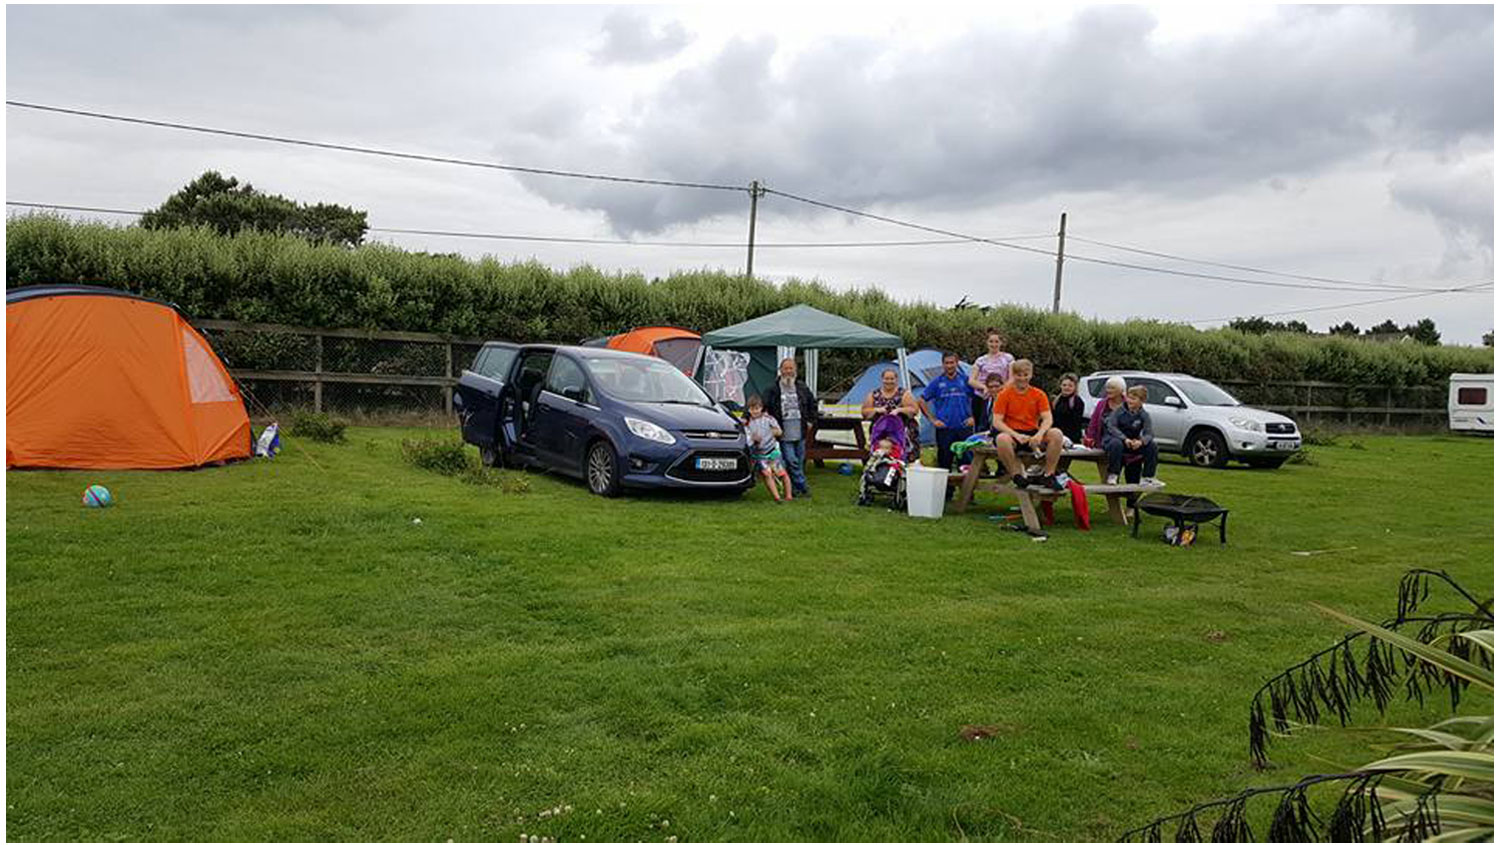 Campers-Camping-Campervans-Motorhomes-Lynders-Mobile-Home-Park-PortraneDonabate-North-County-Dublin-Fingal